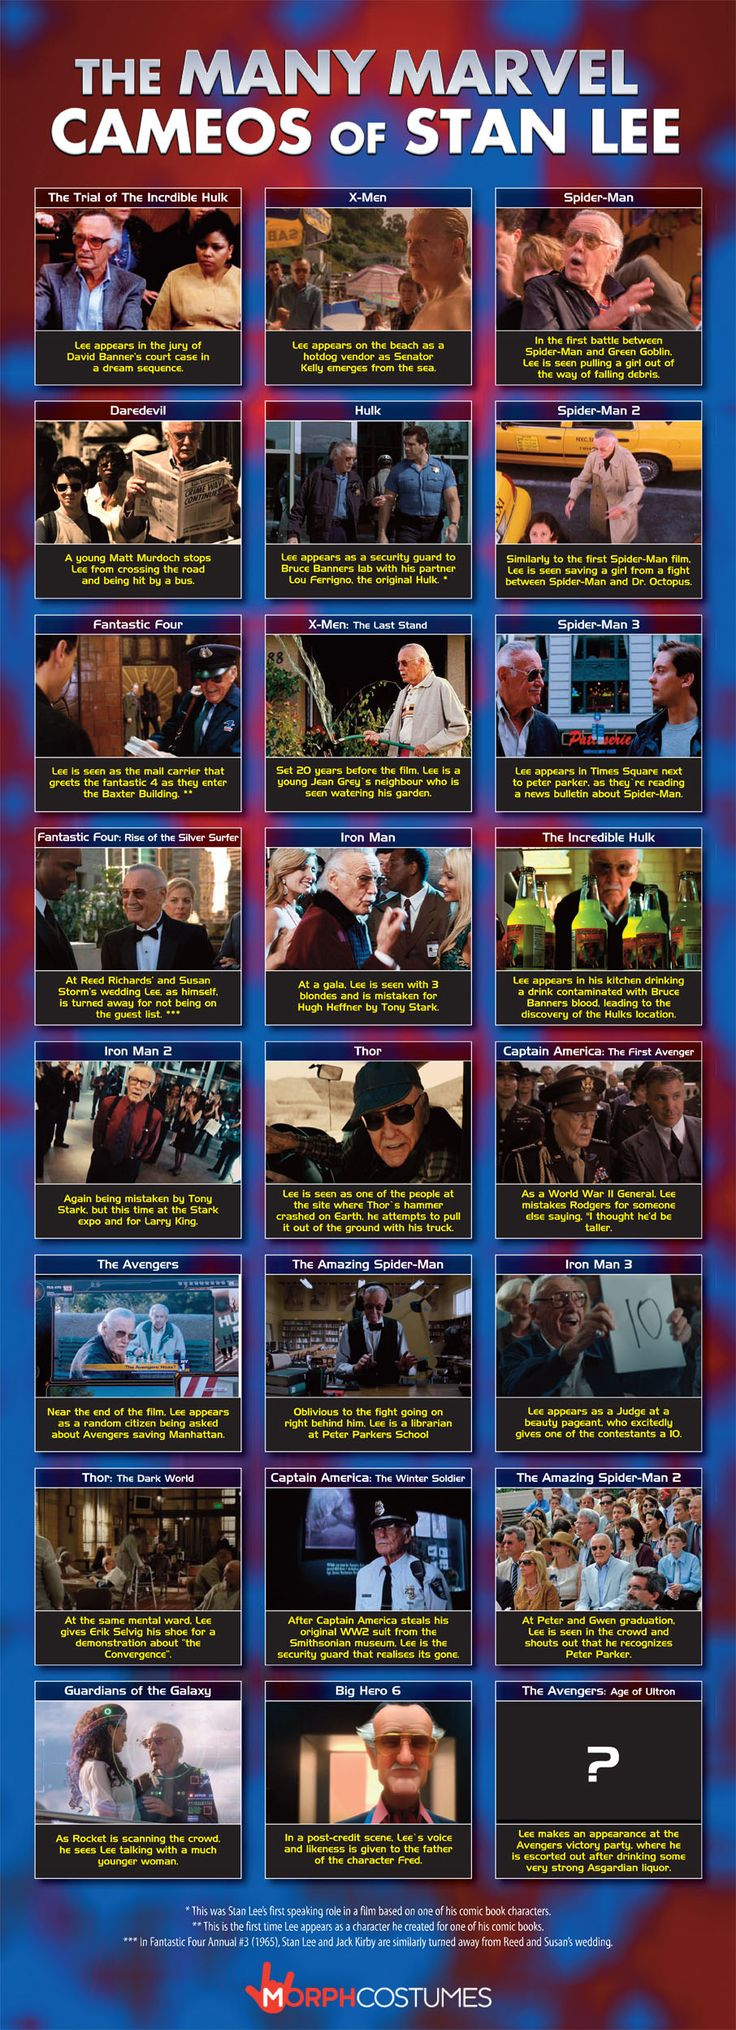 The Many Marvel Cameos of Stan Lee